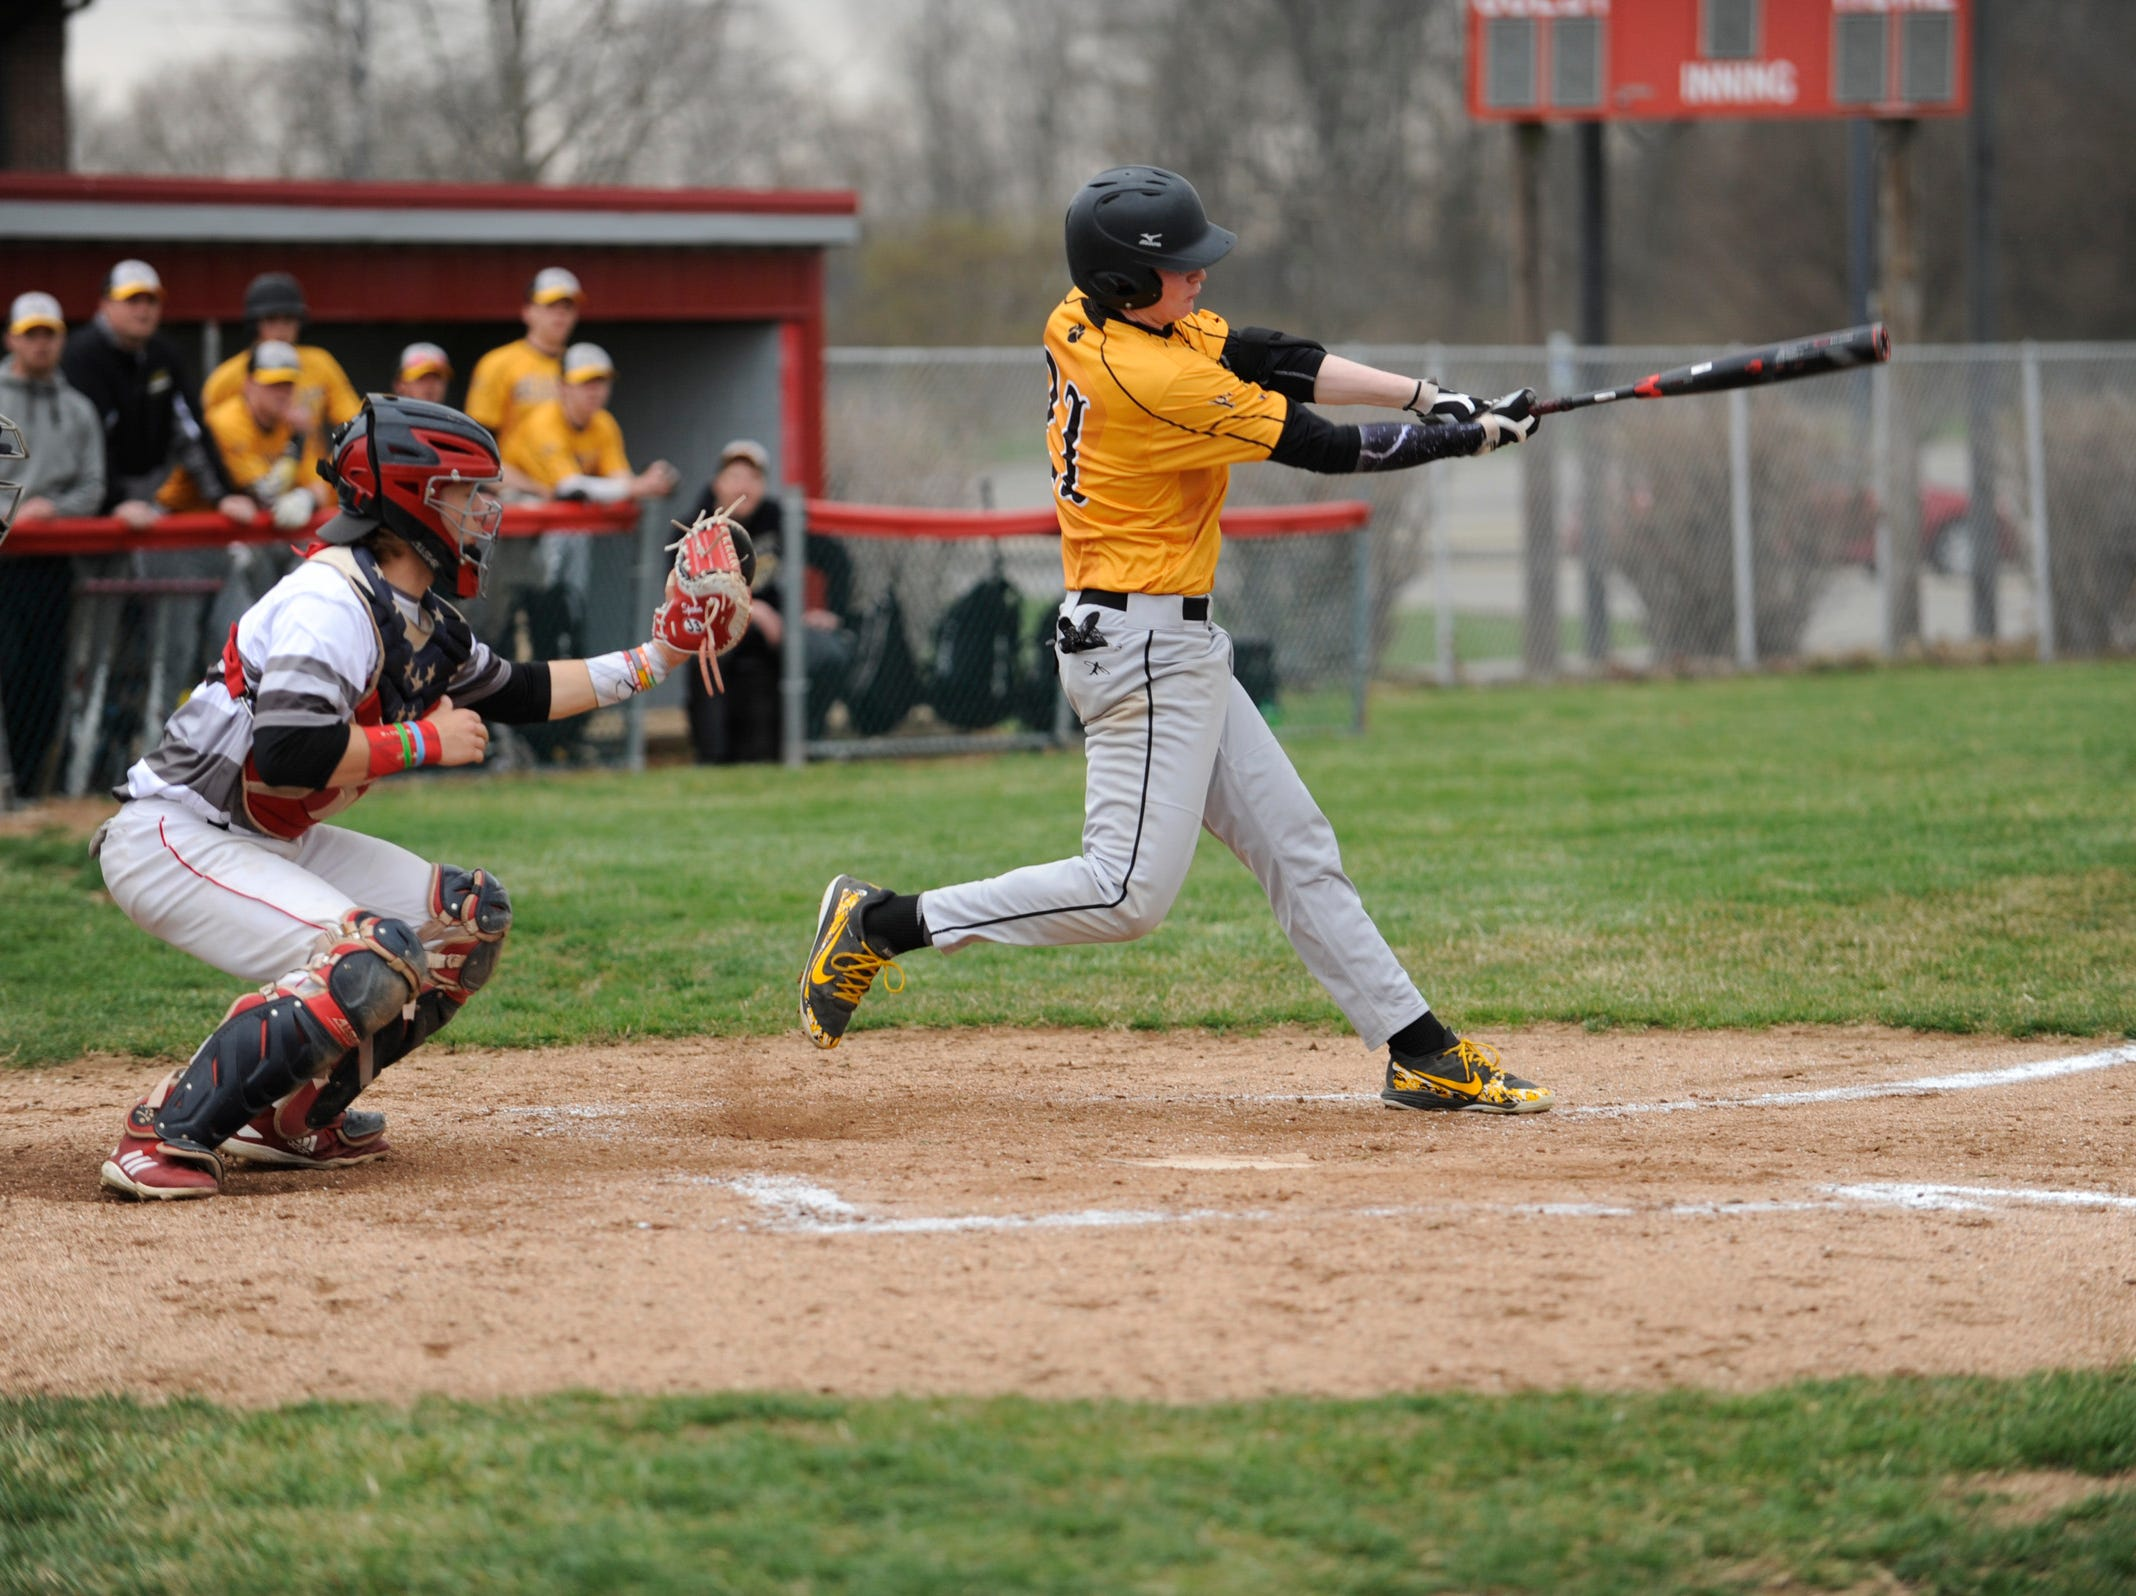 Westfall defeated Paint Valley 6-5 in eight innings Friday night in Williamsport, Ohio.